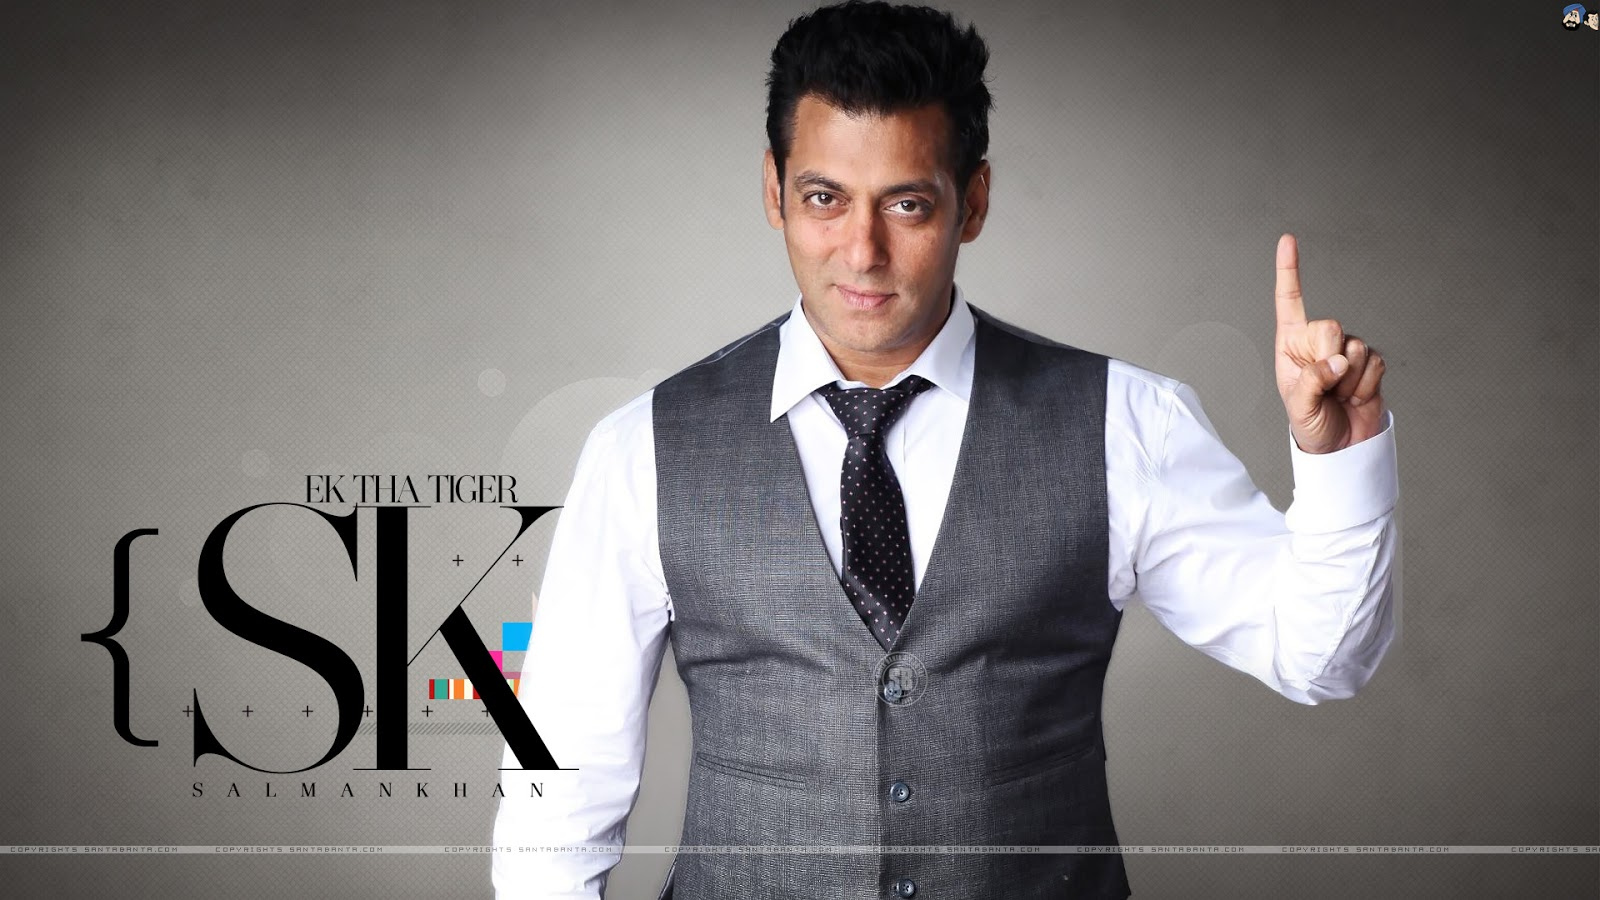 Big Boss Salman Khan Desktop HD Wallpaper 1920x1080